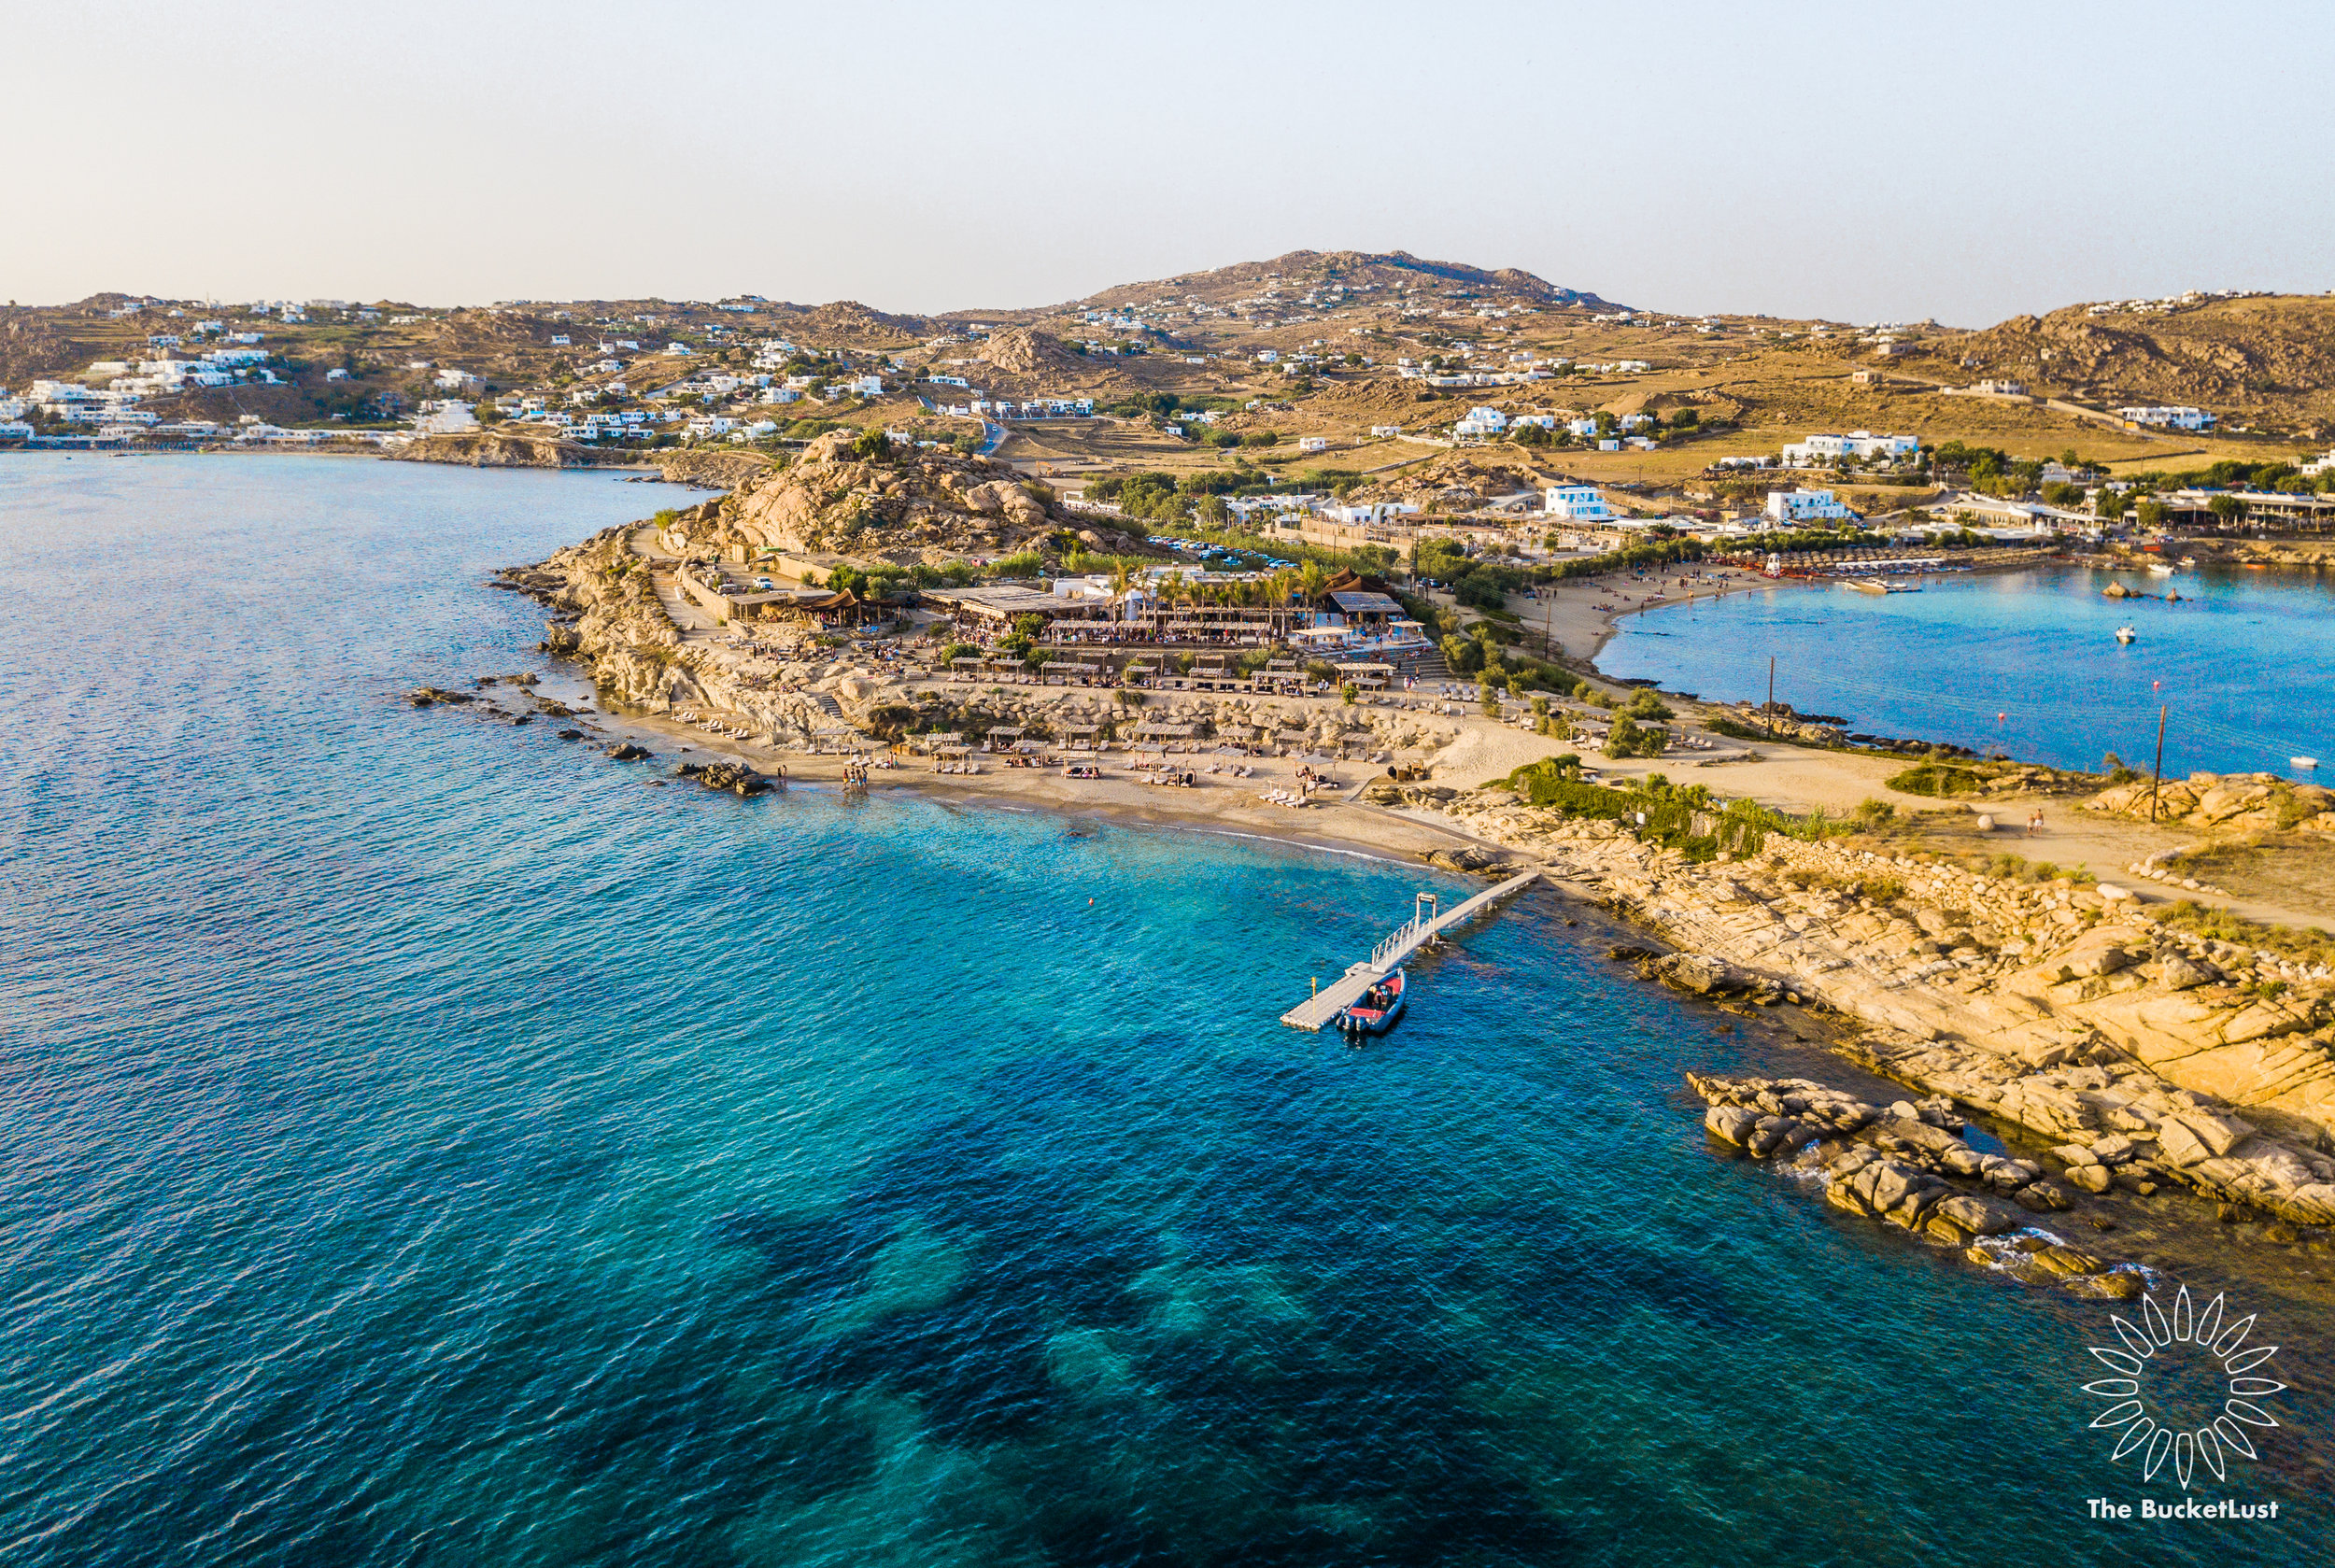 Scorpios Day Party, Greece - The Mykonos Route